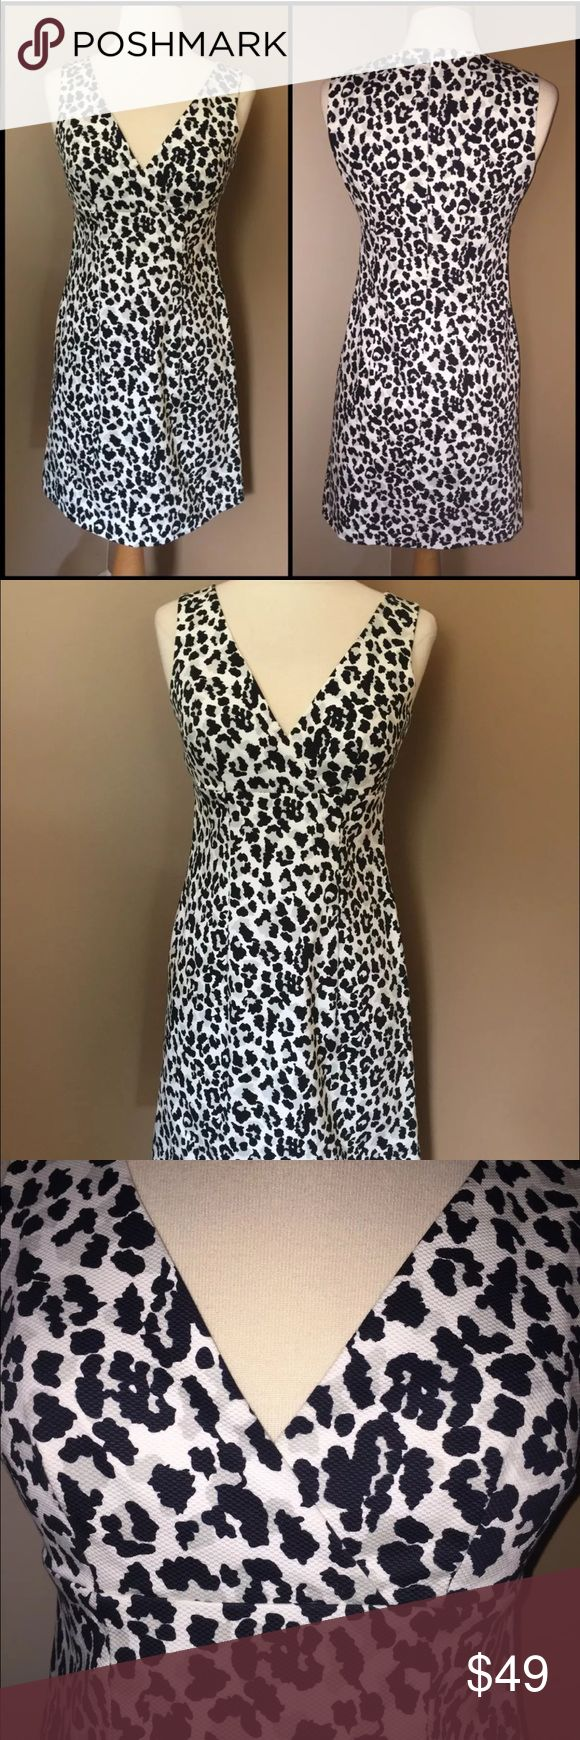 MICHAEL KORS Animal Print Cocktail Dress Size 0 MICHAEL KORS Black And White Animal Print Cocktail Dress Size 0. Worn just once. In amazing condition. Michael Kors Dresses Mini